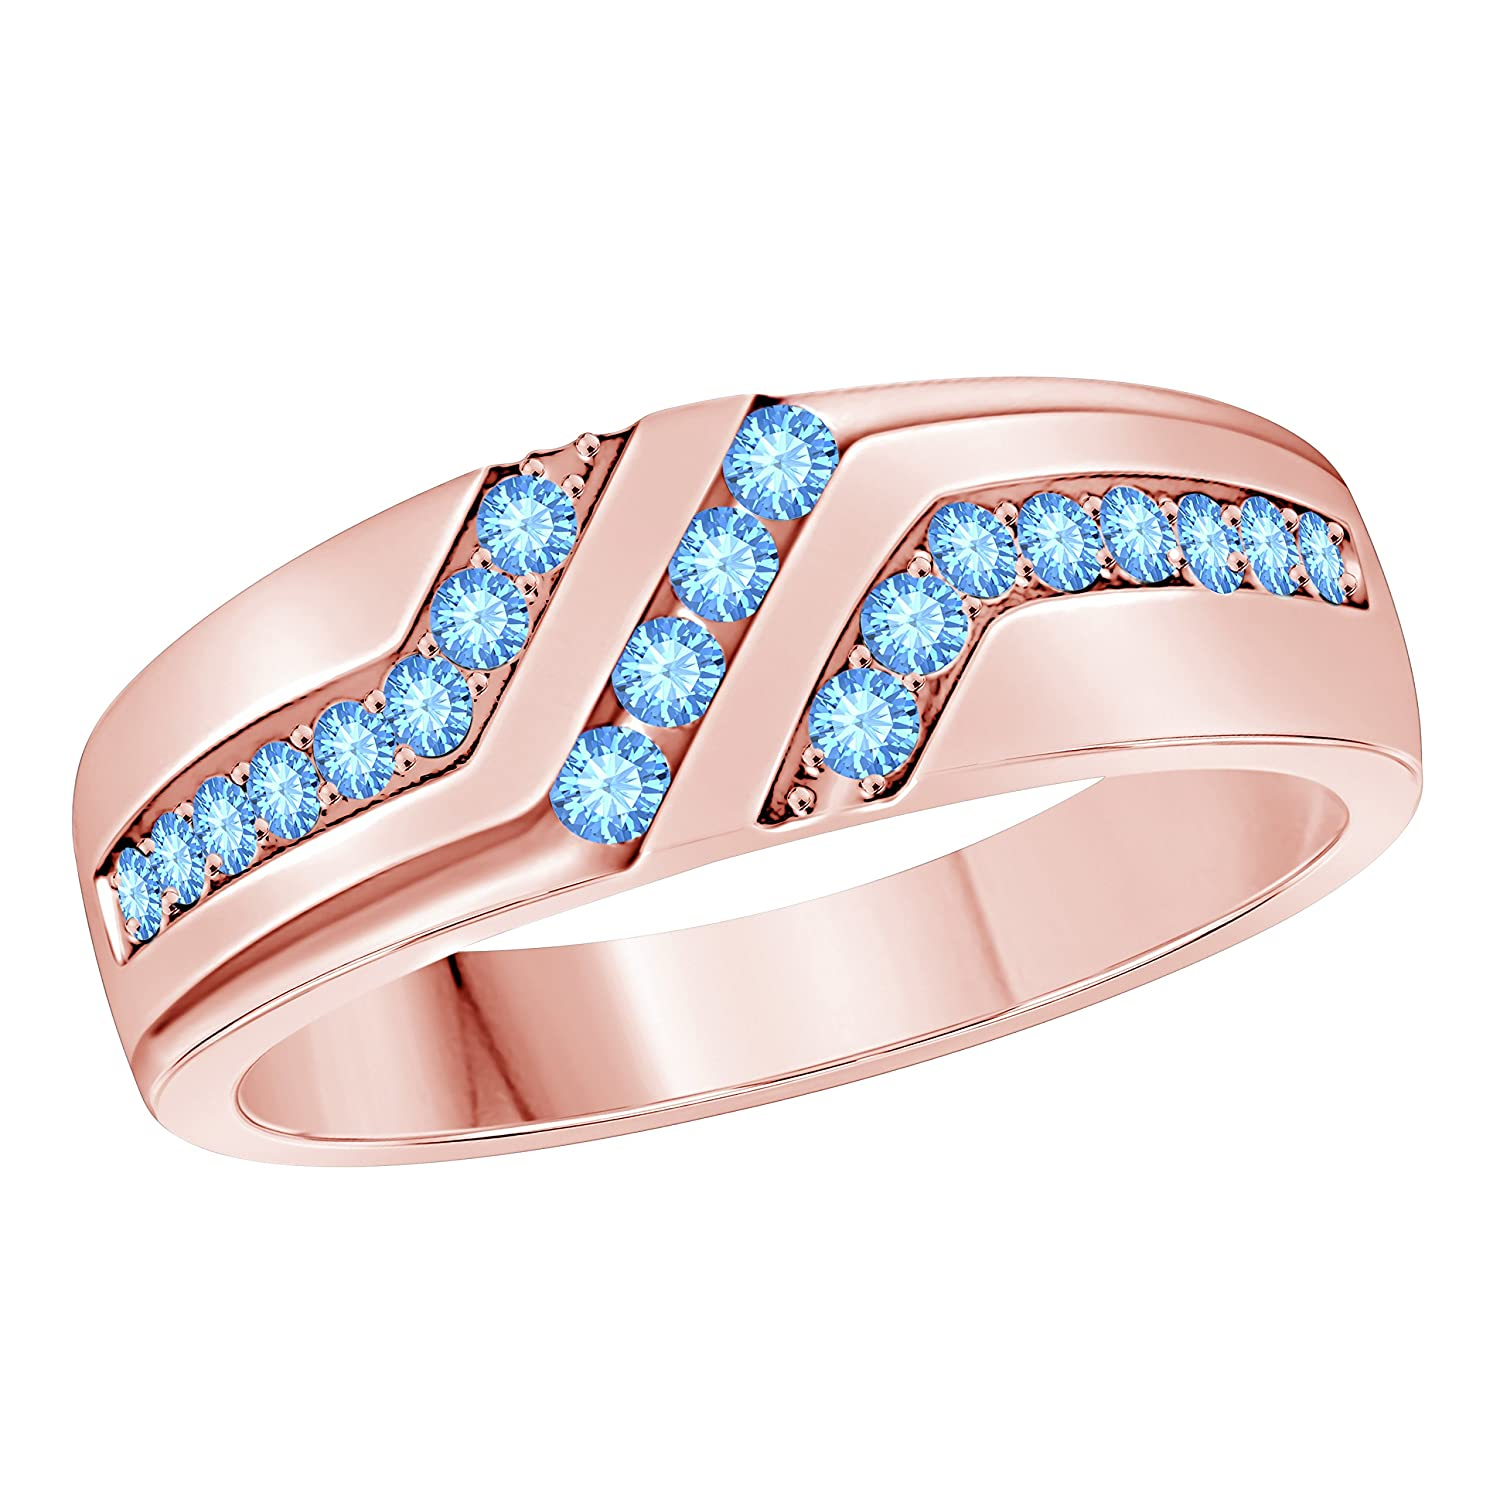 Star Retail Mens Wedding Anniversary Band Ring in 18k Rose Gold Plated Alloy Lab Blue Topaz Size 6-14